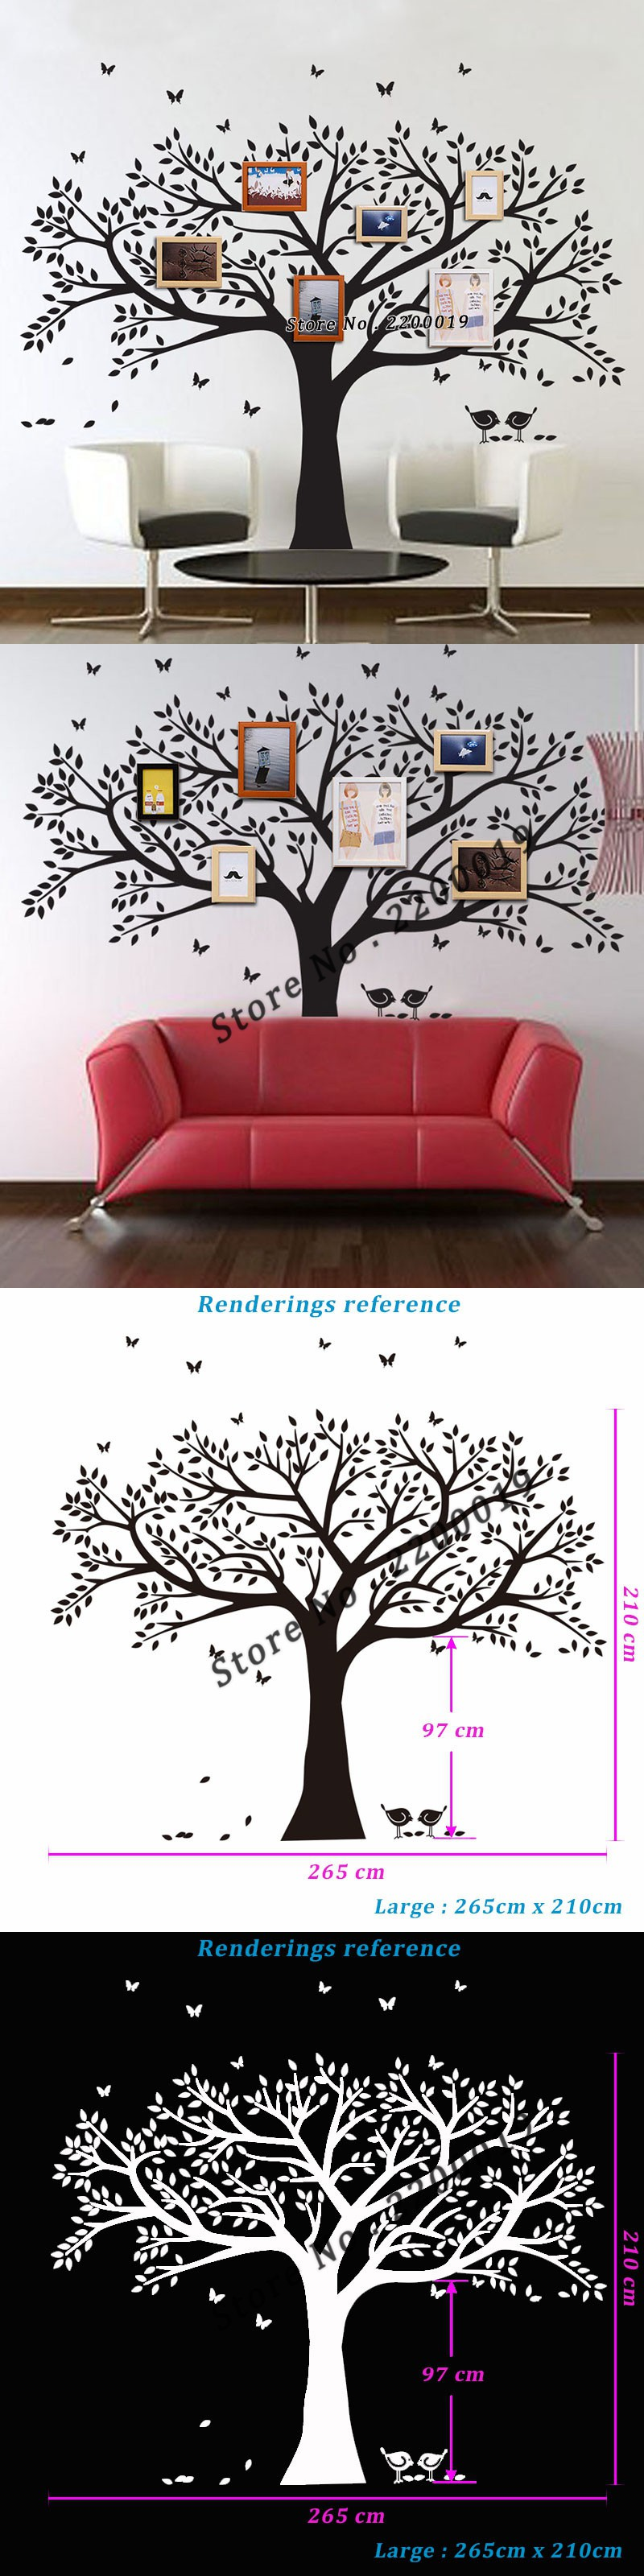 Oversized 265x210cm Family Tree Decal Extra Large Wall ...